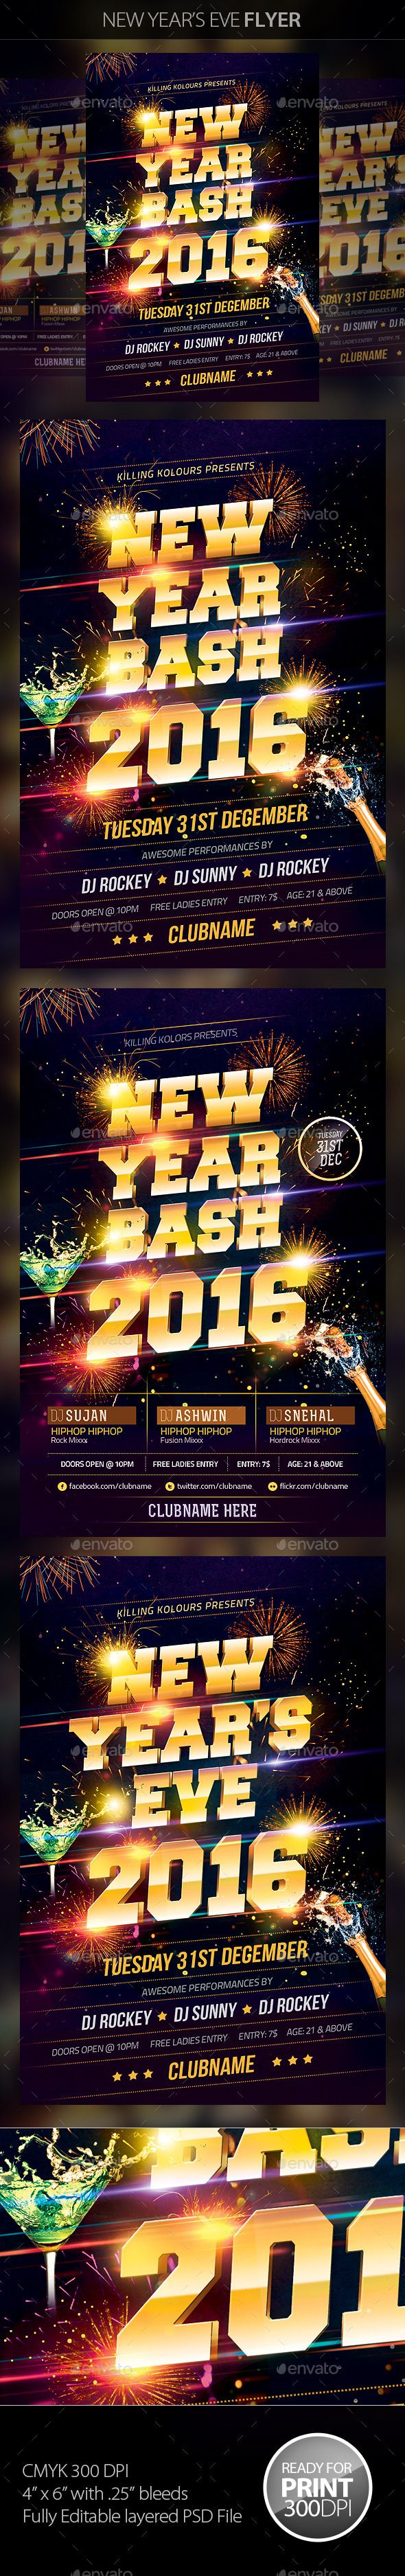 New Year Party Flyer Template PSD #design #nye Download: http://graphicriver.net/item/new-year-party-flyer/6143639?ref=ksioks